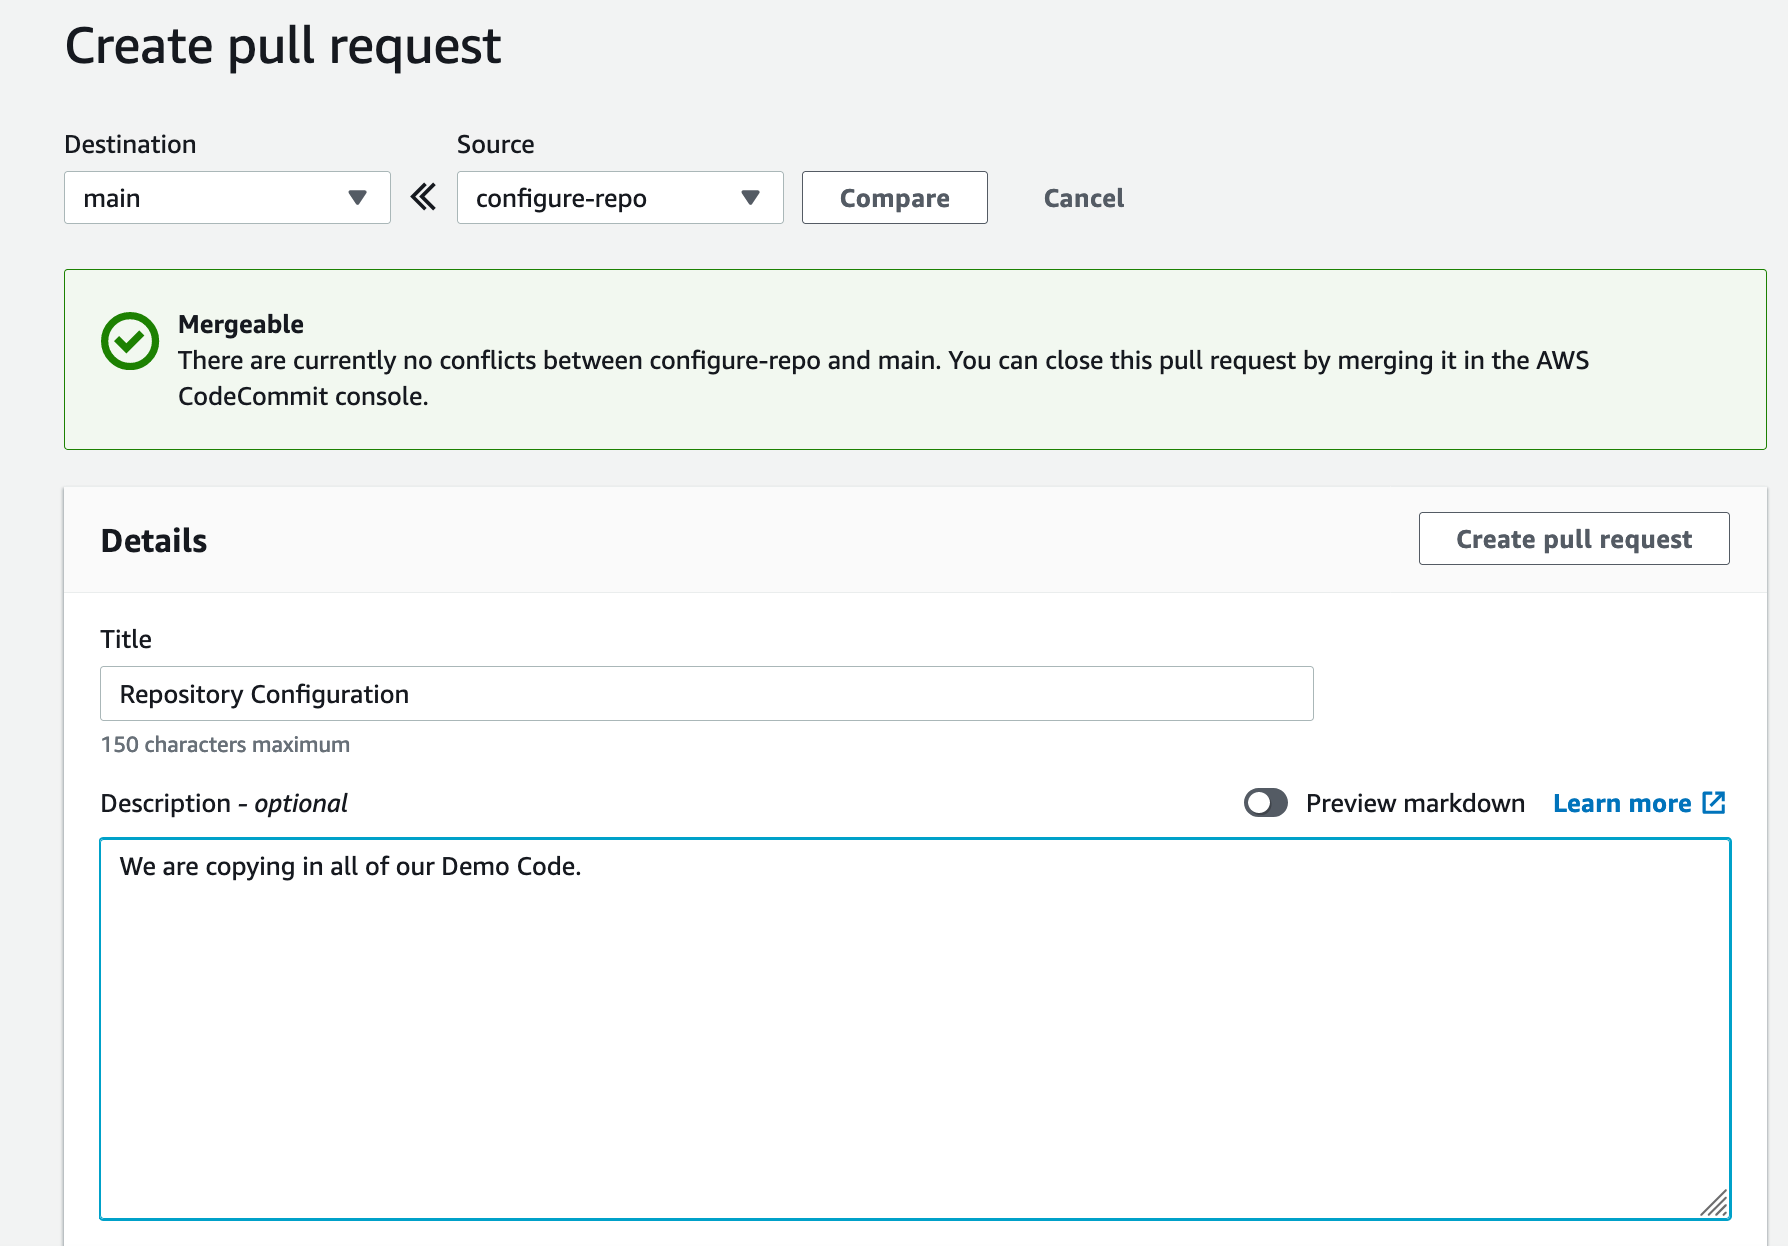 Shows a pull request for DemoRepo